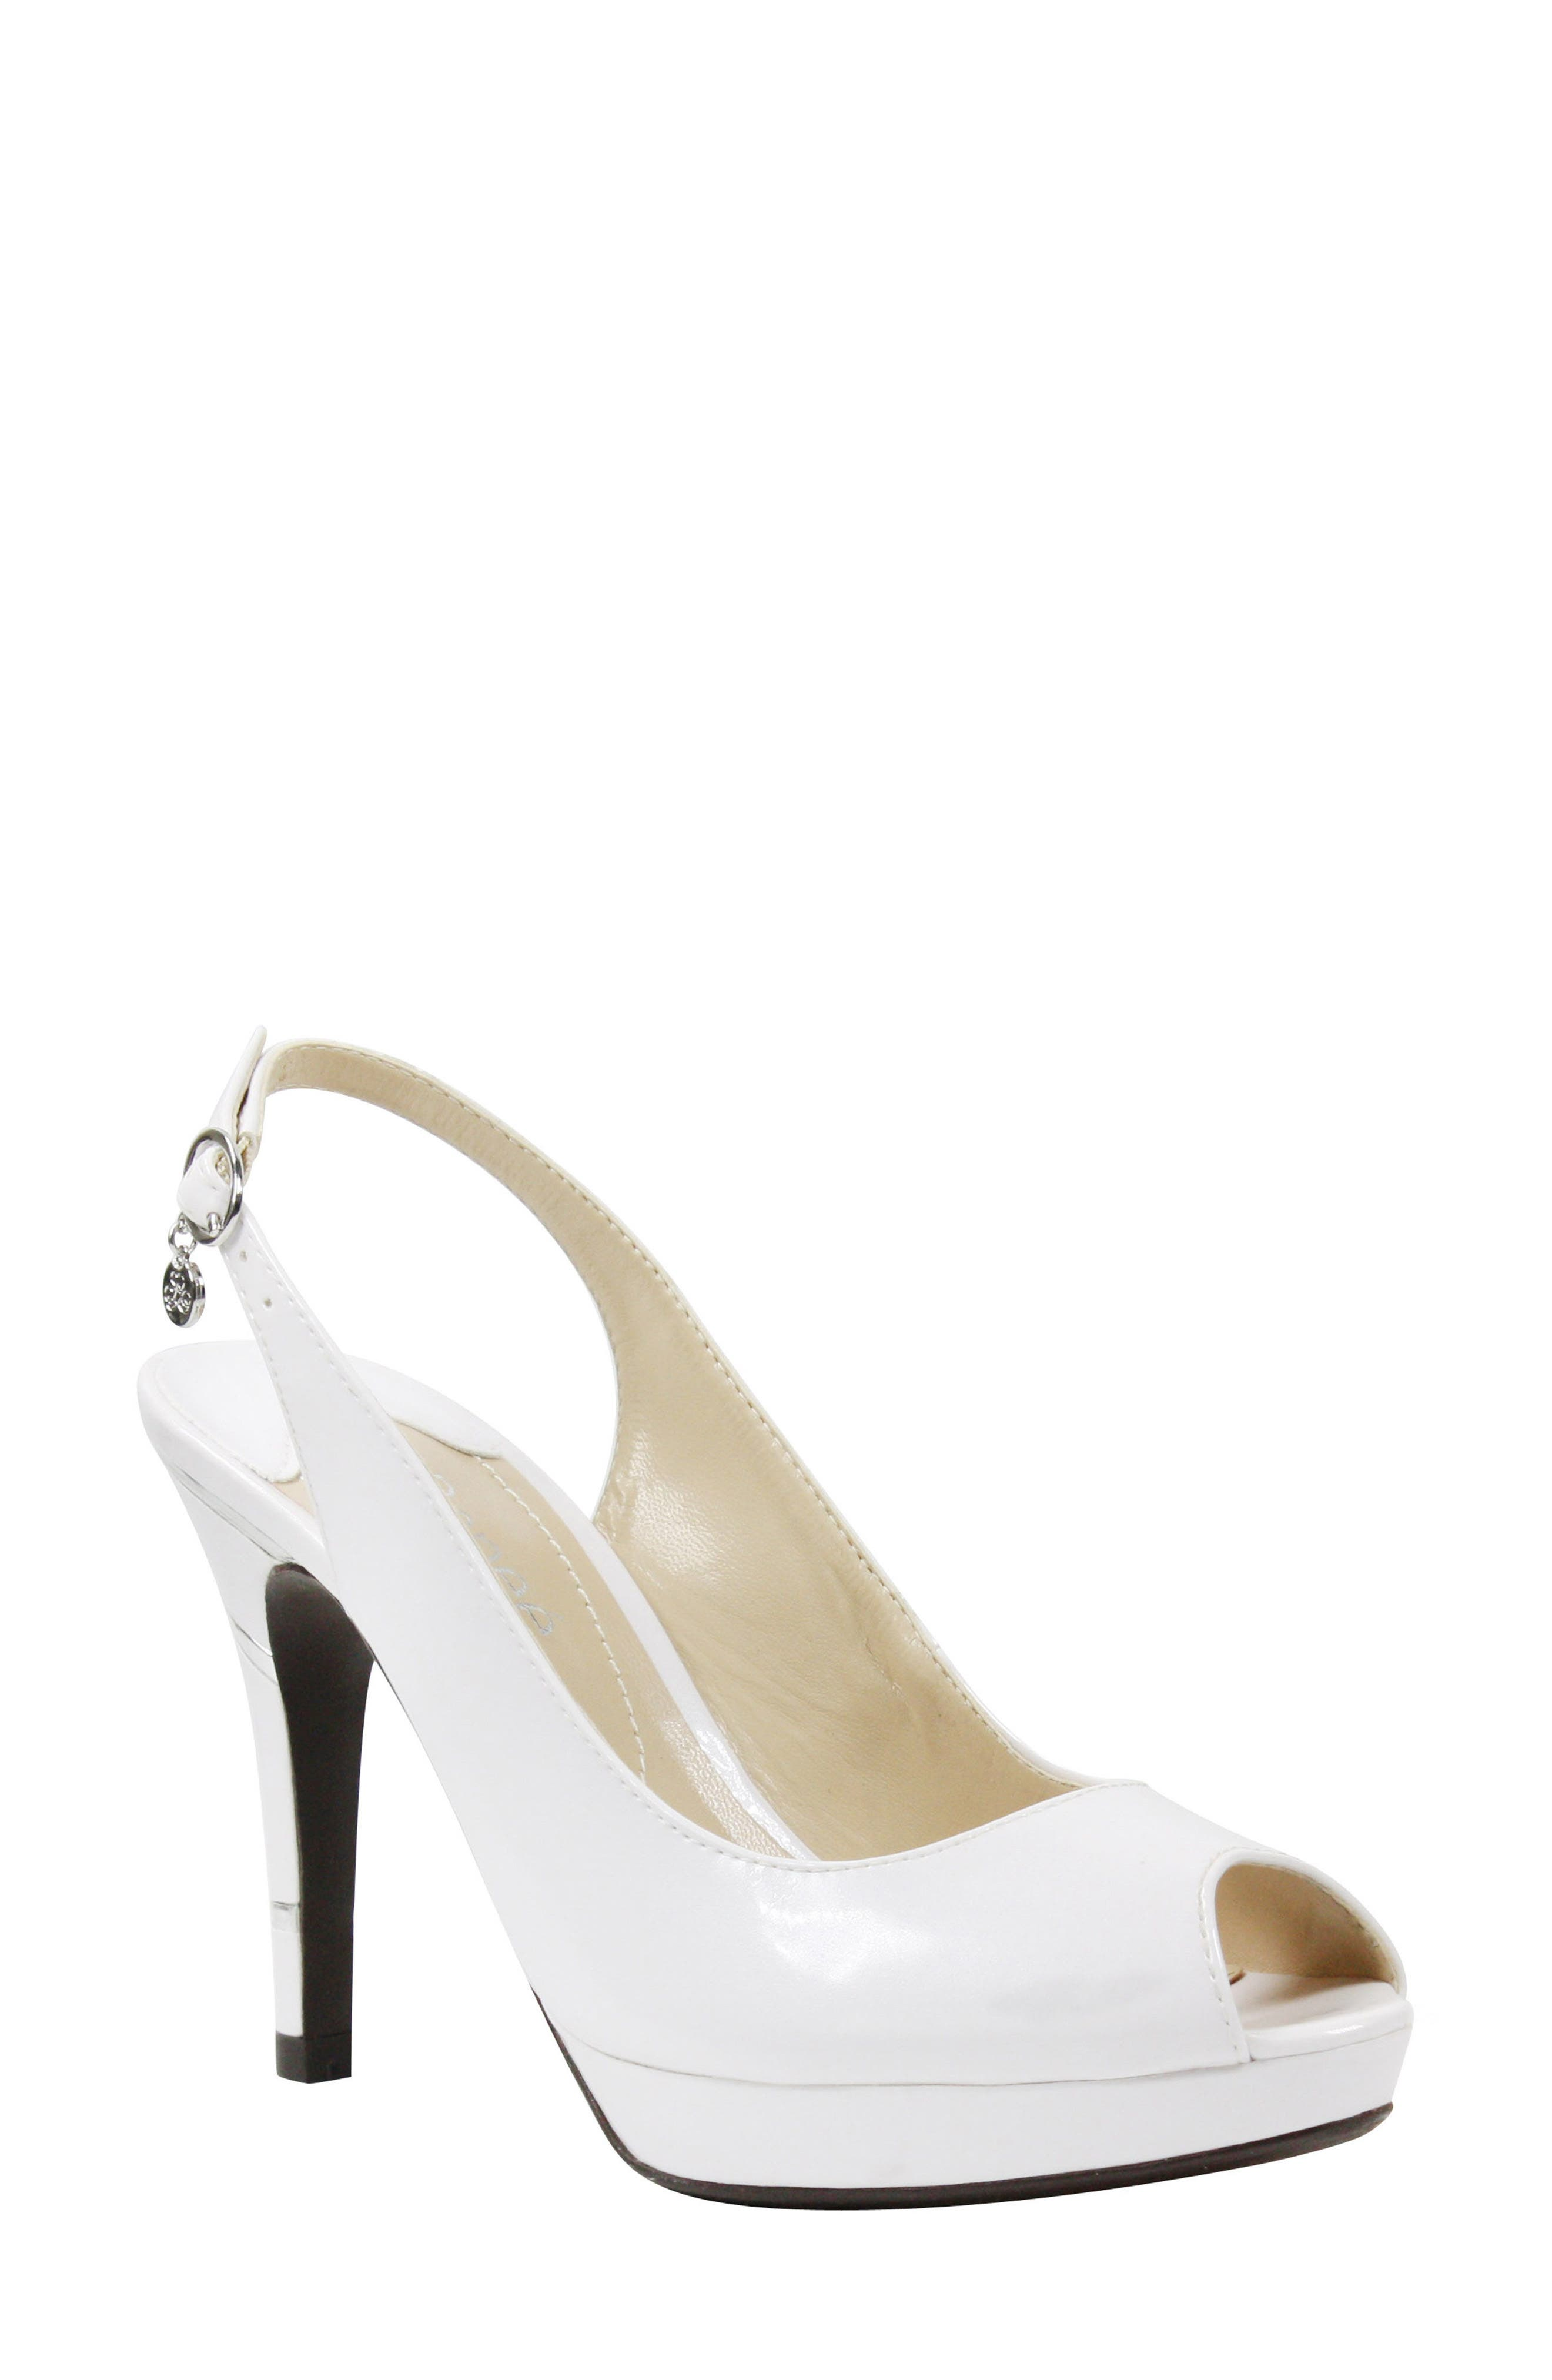 Onille Slingback Pump,                         Main,                         color, Pearl White Faux Leather